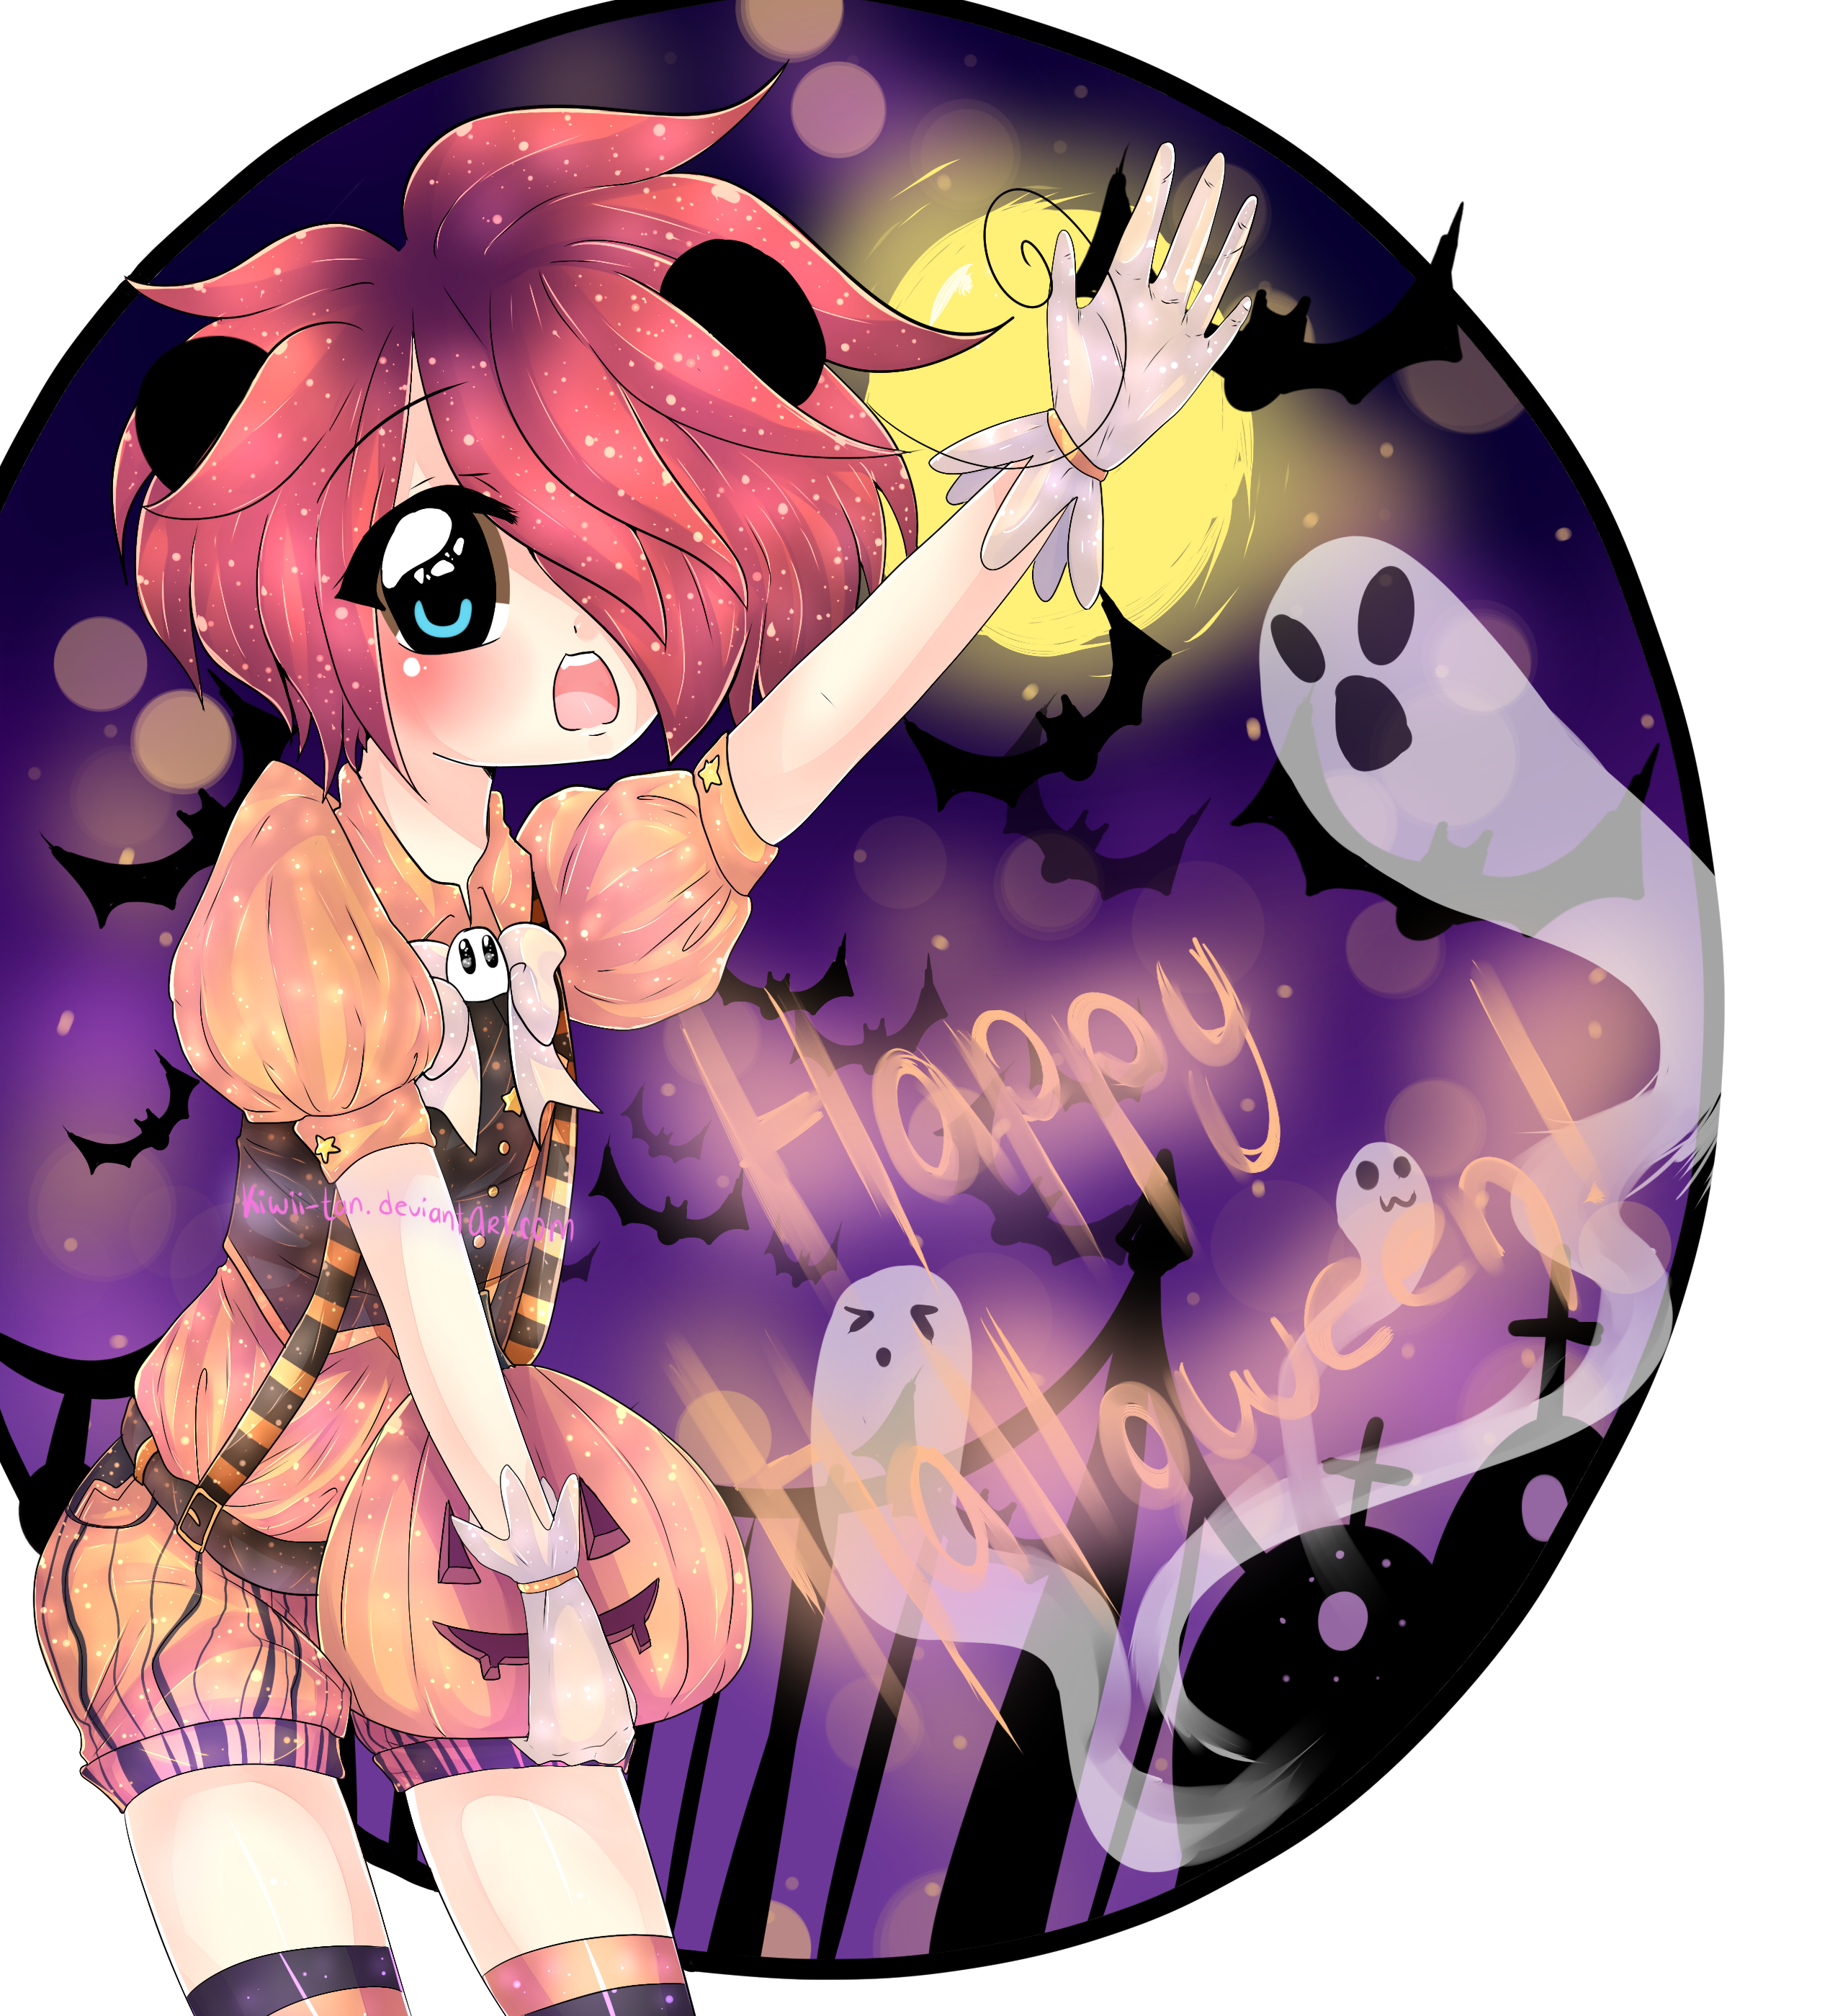 Happy Halloween! by Kiwii-tan